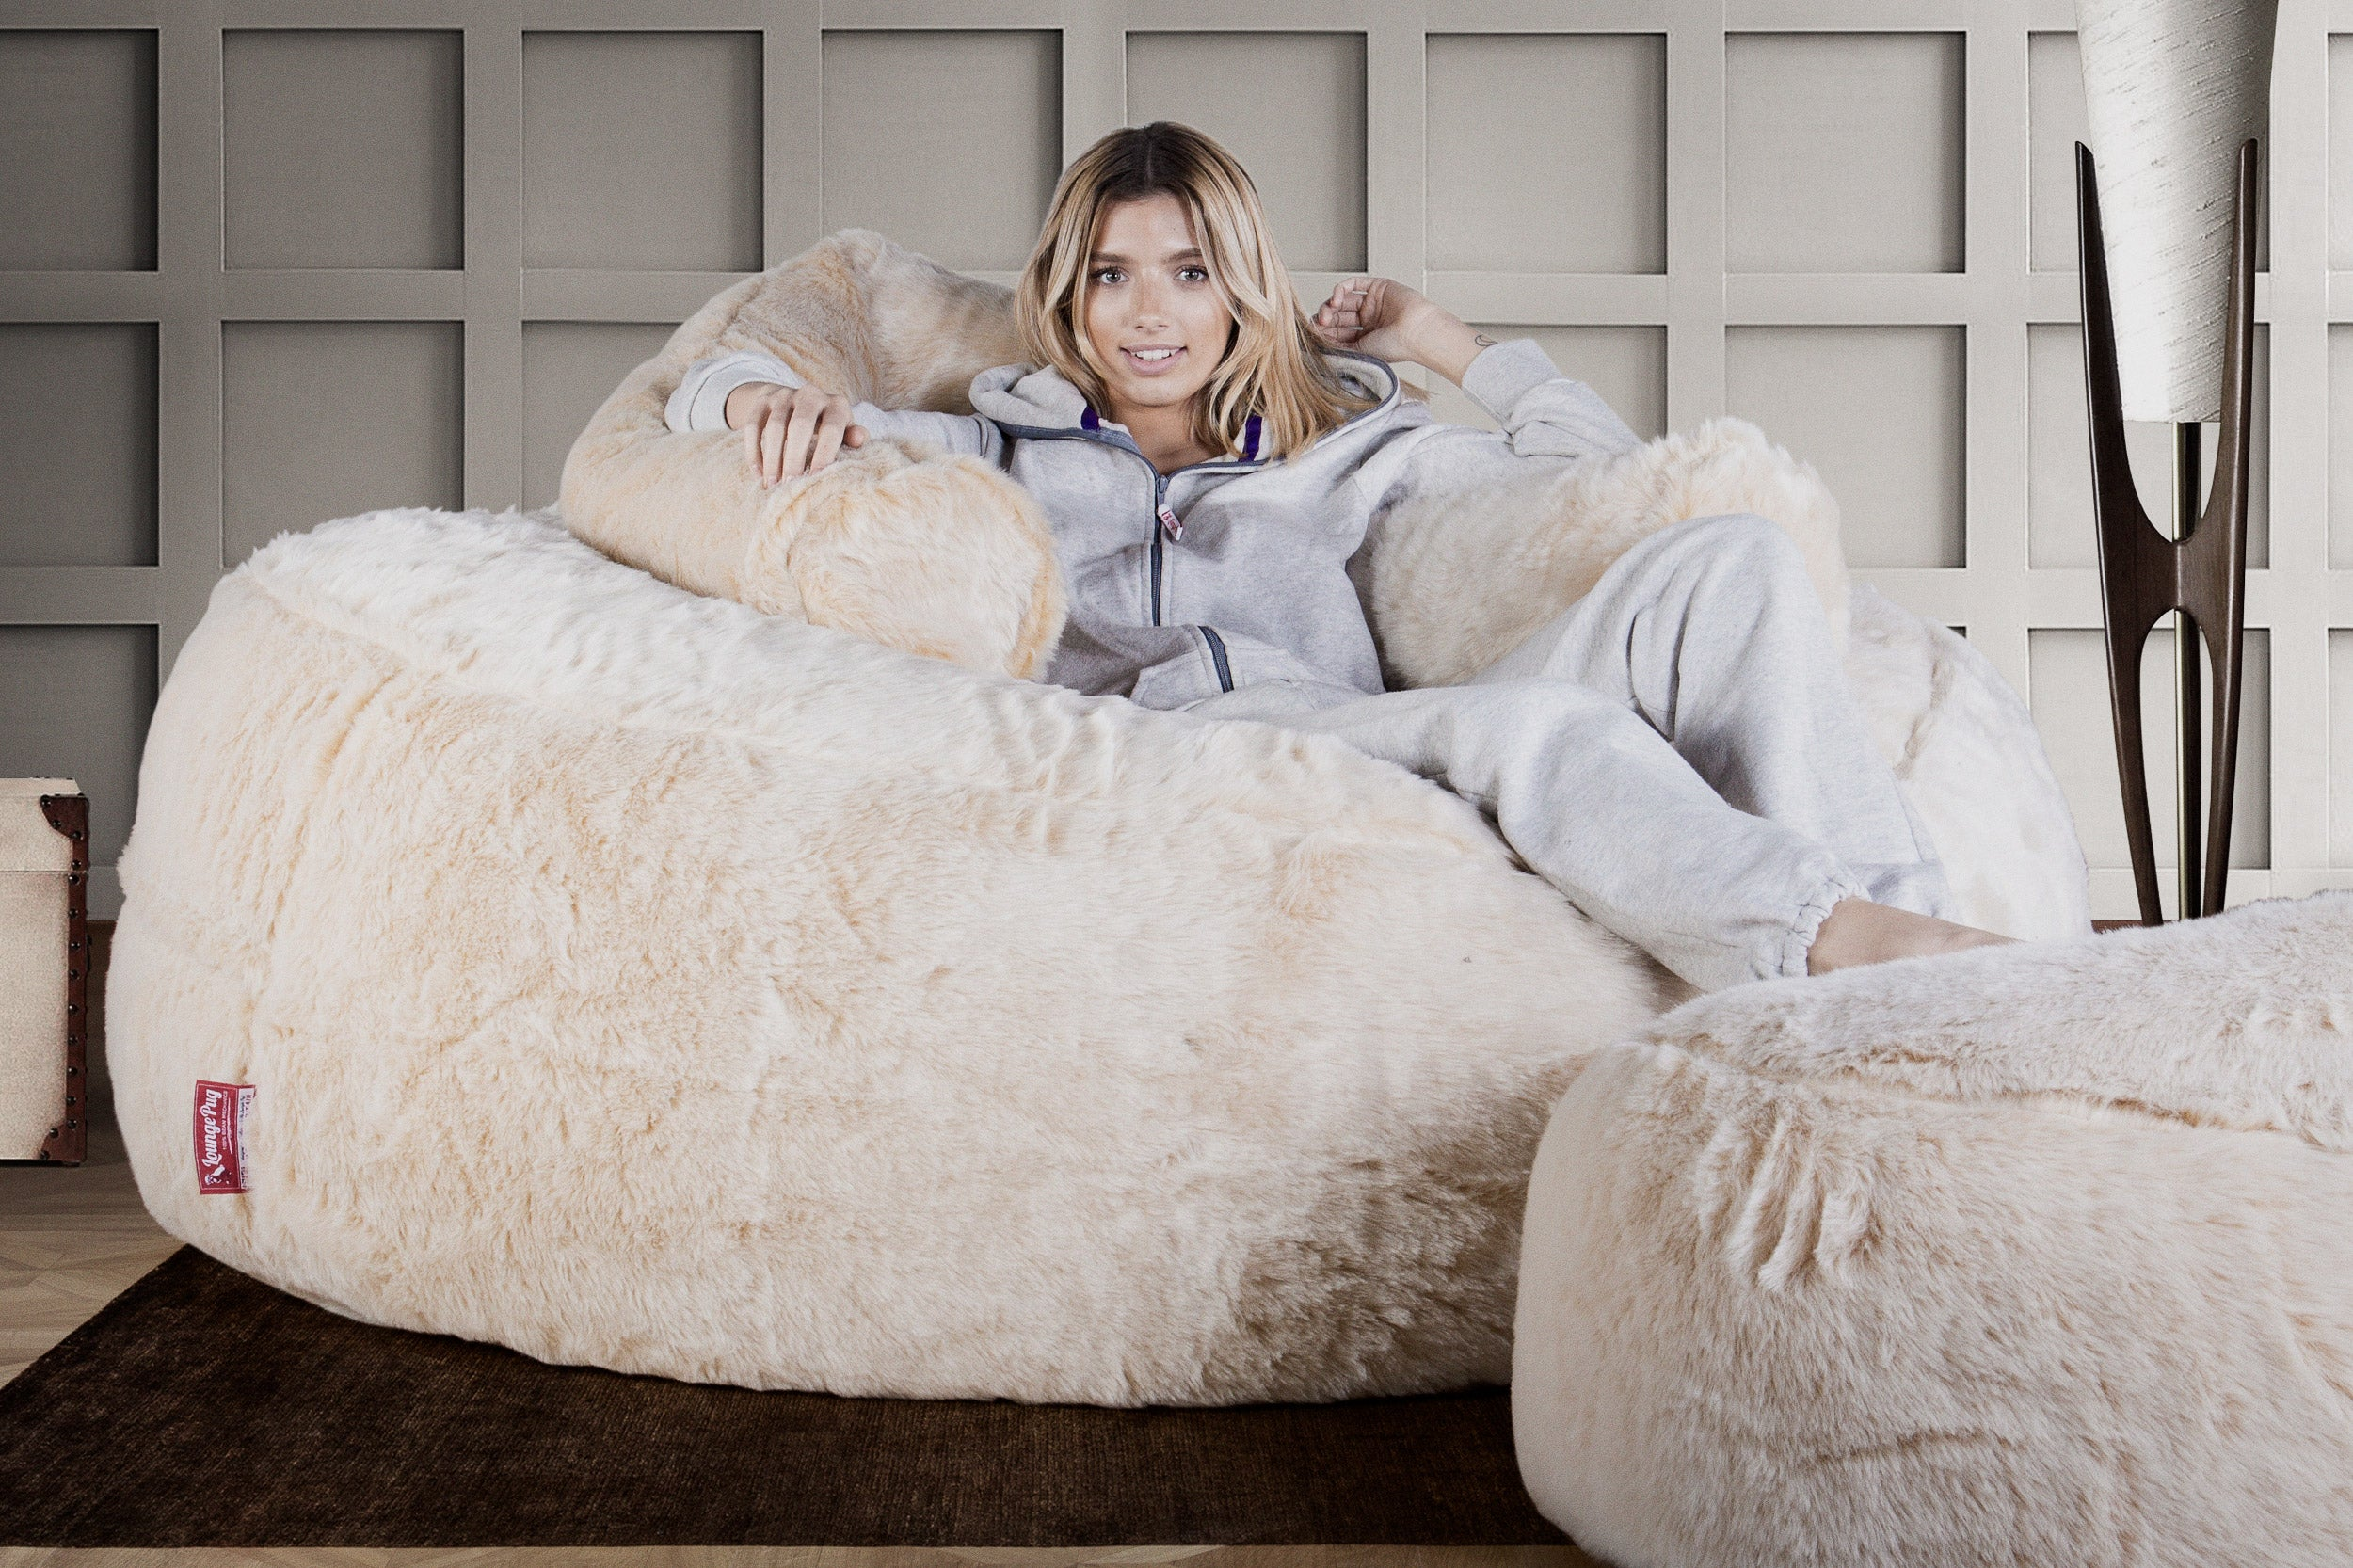 Lounge Pug Cream Giant Bean Bag Sofa Mega Mammoth Beanbag